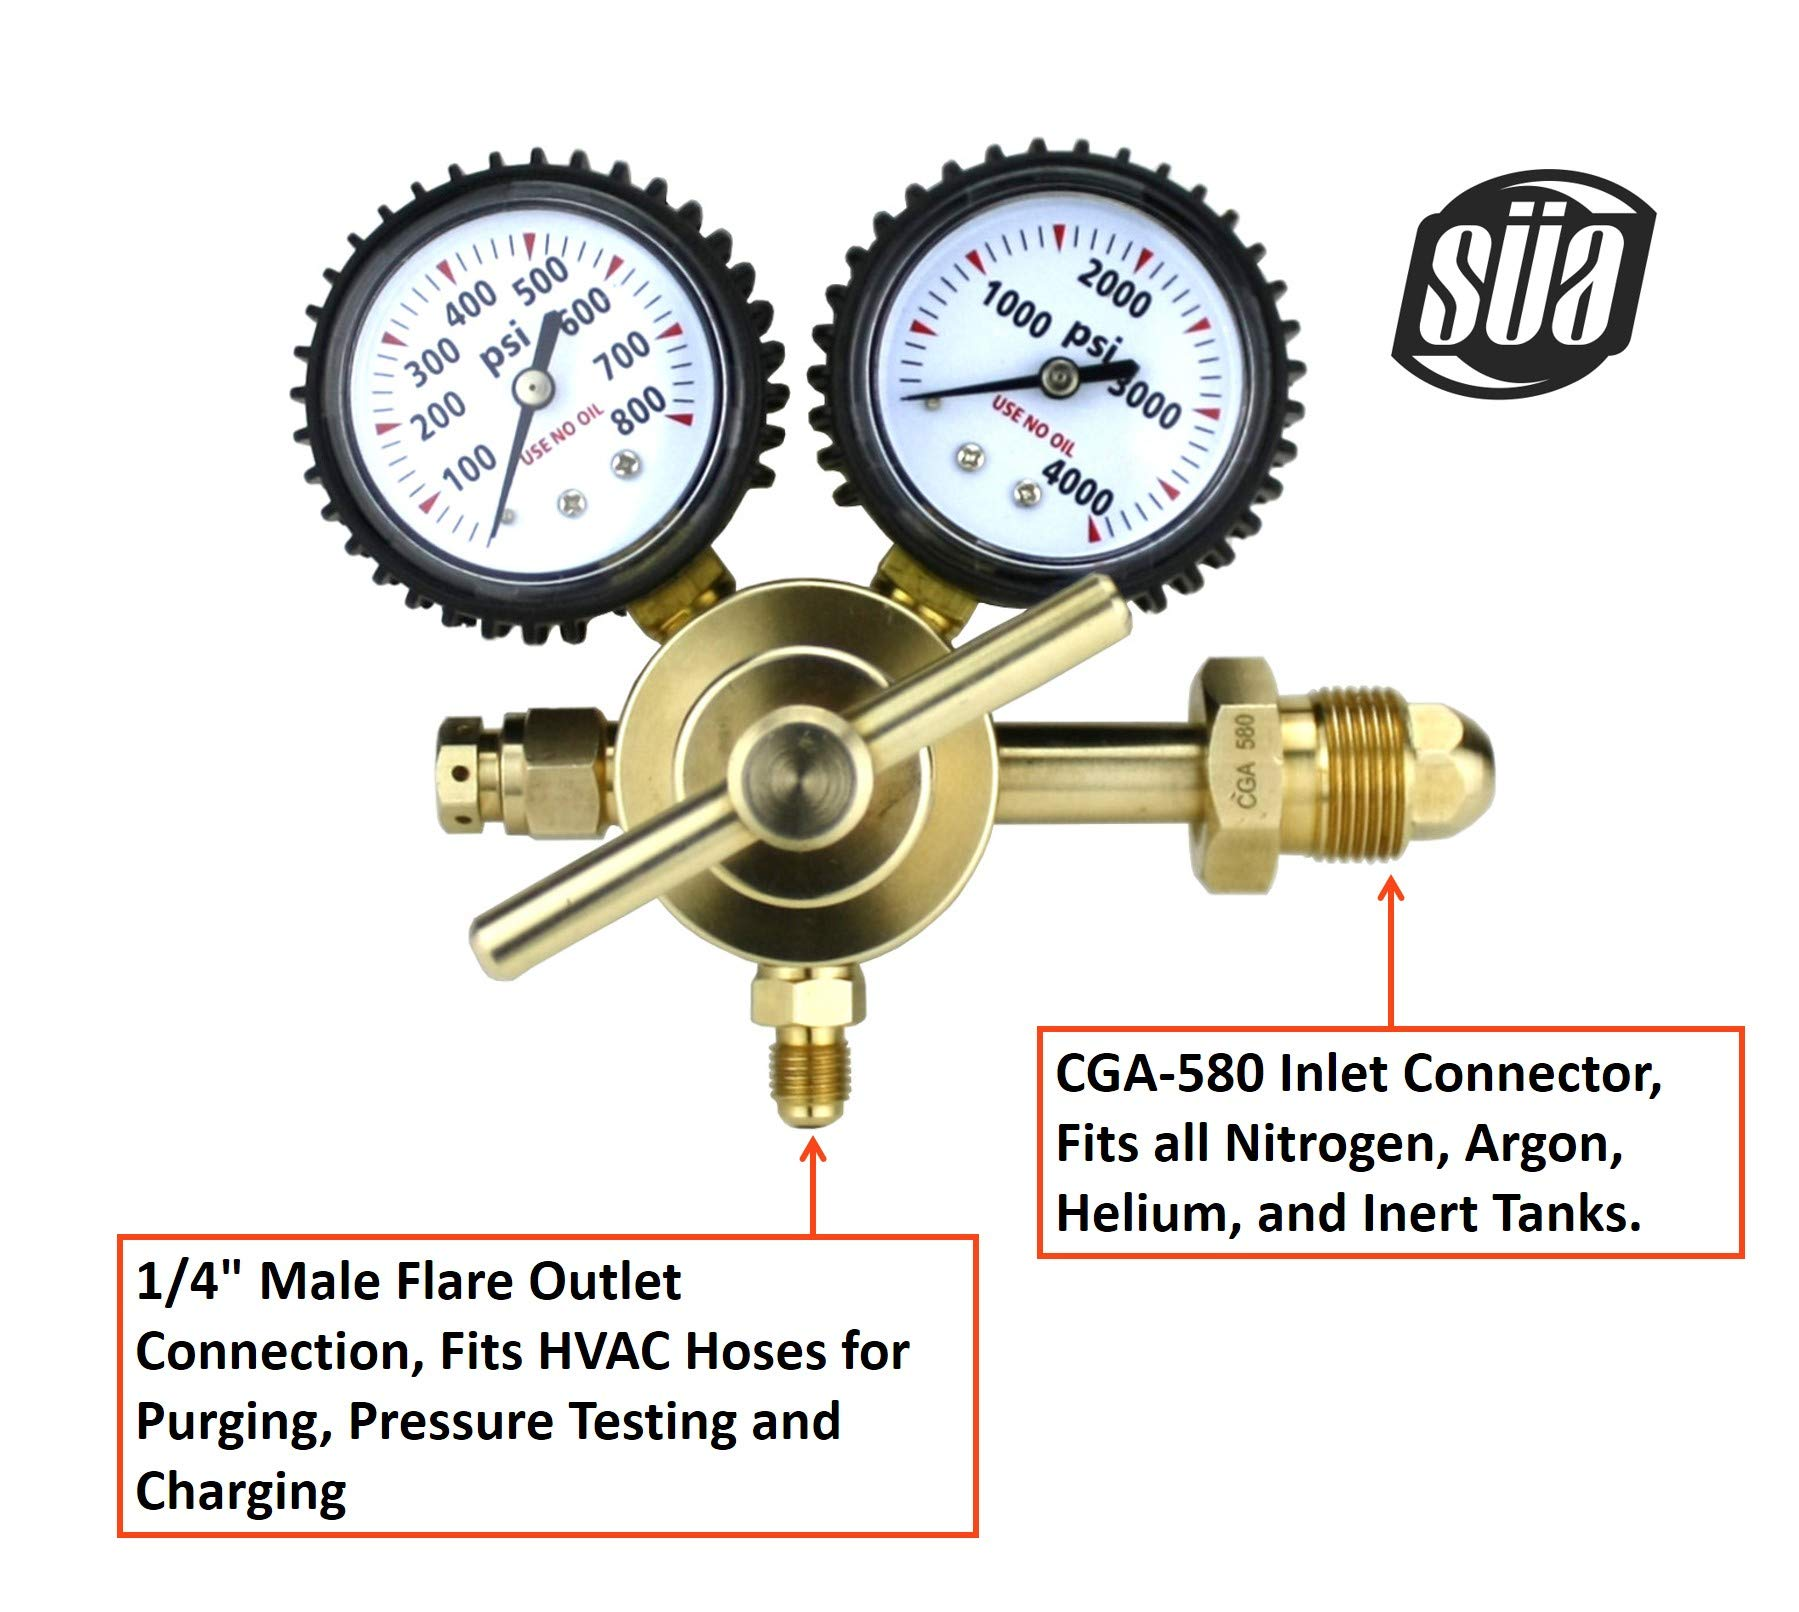 Or Sway-A-Way Shocks 0 to 400Psi Or 0 to 2800Kpa Bilstein Pacific Customs Nitrogen Shock Fill Kit Pressure Gauge for Fox 802-02-002-A King